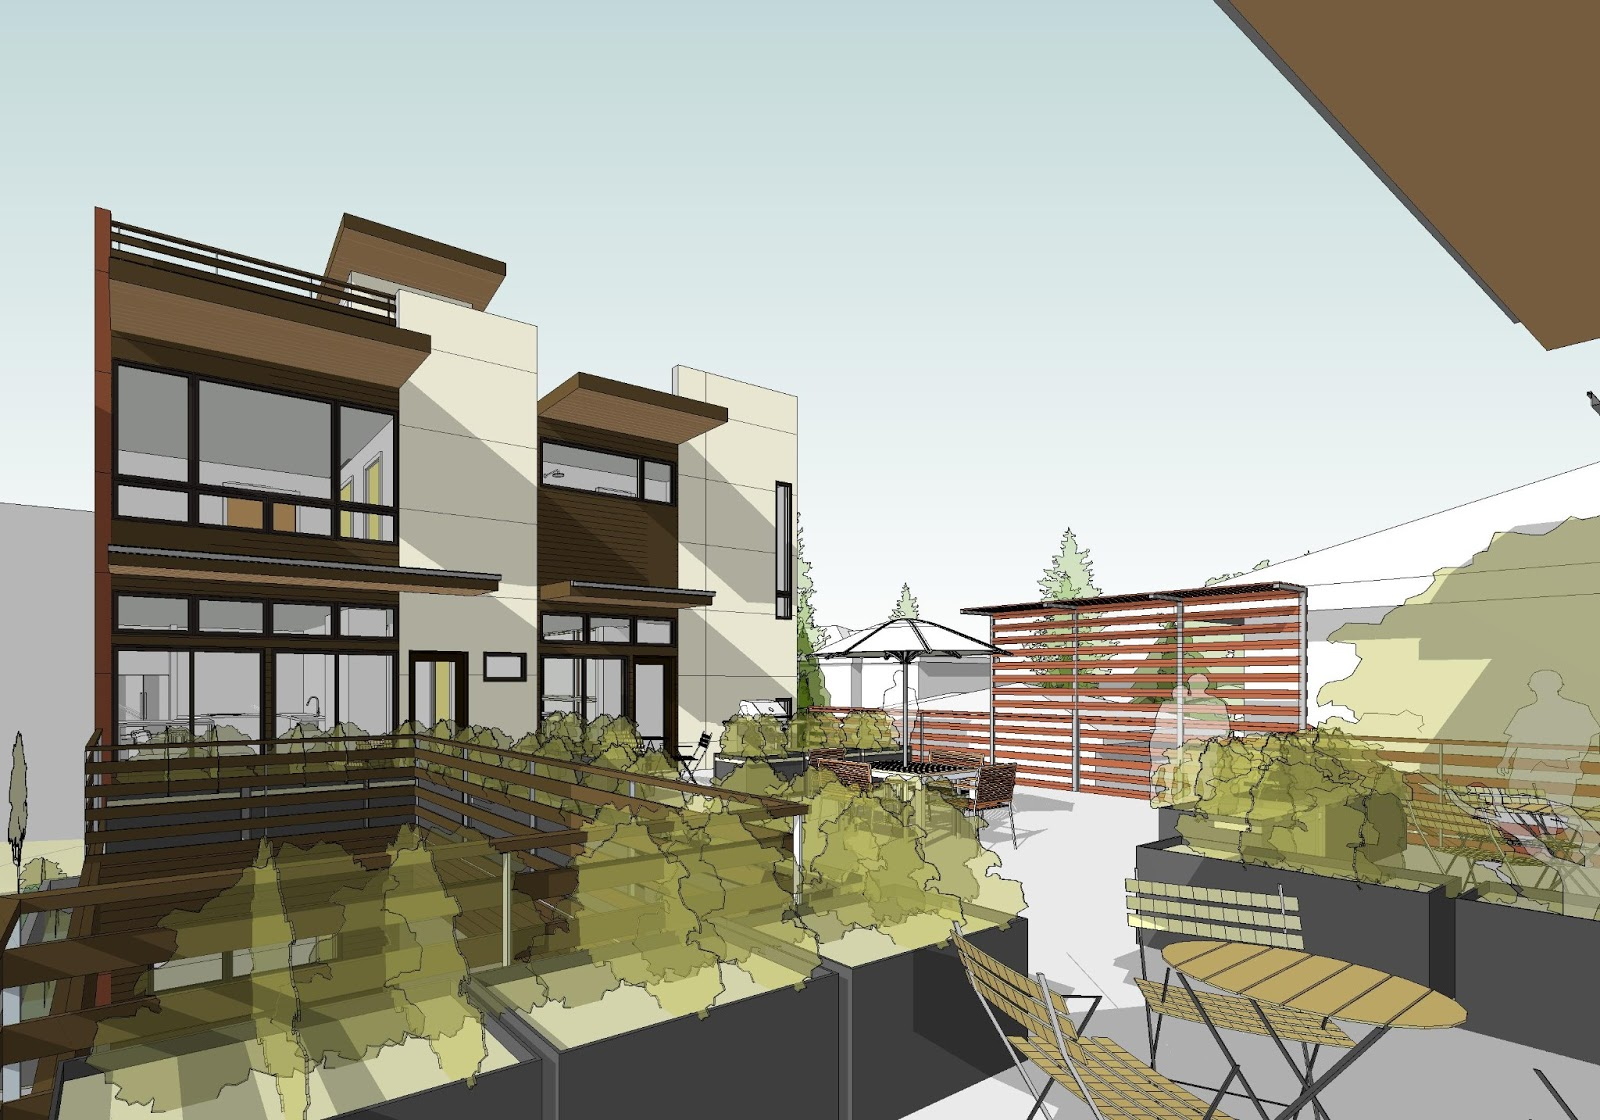 neiman taber architects: new townhouse projects at the seattle